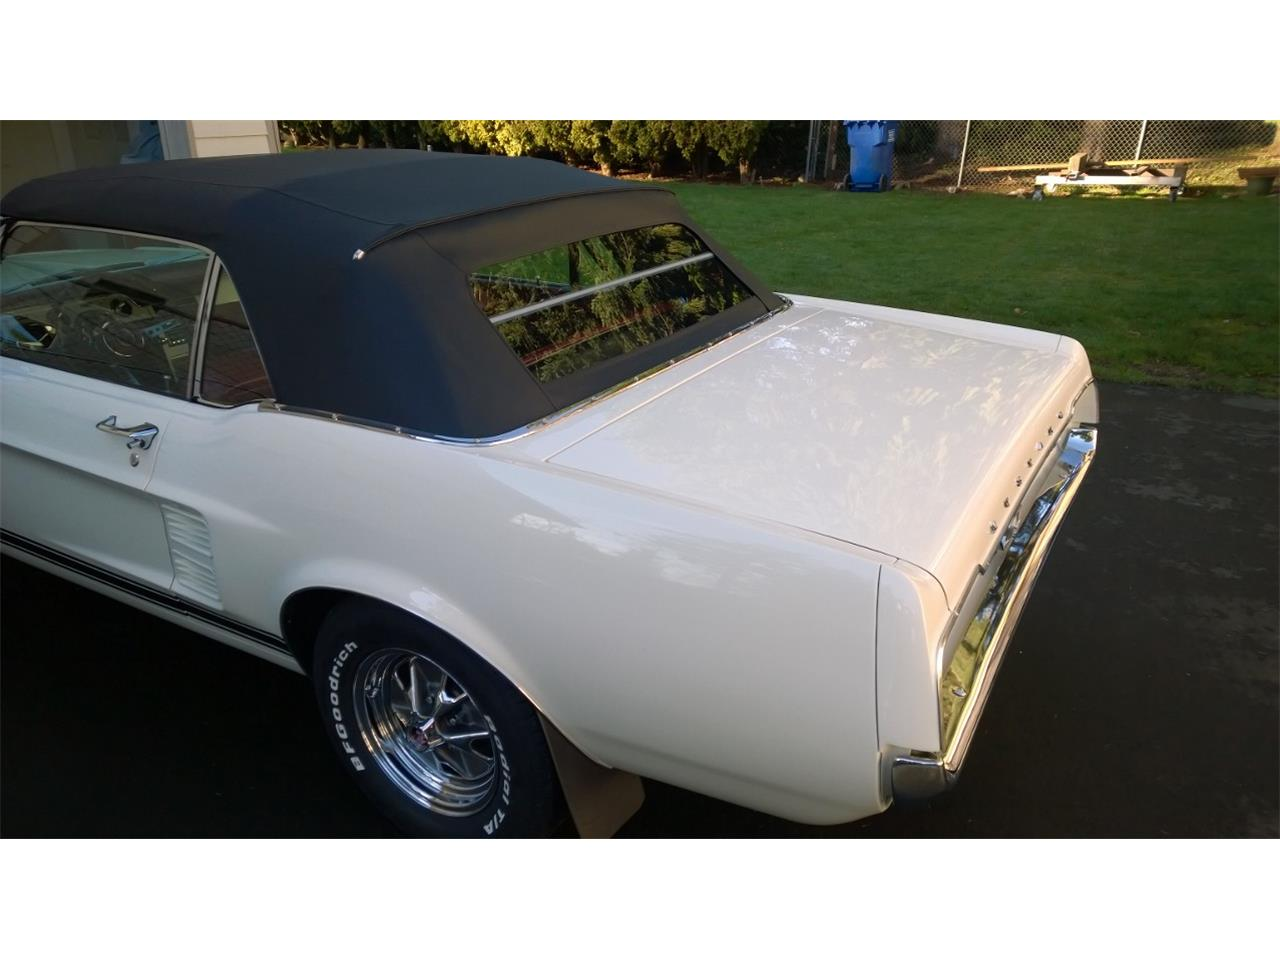 Large Picture of Classic '67 Ford Mustang GT - $120,000.00 Offered by a Private Seller - QADD